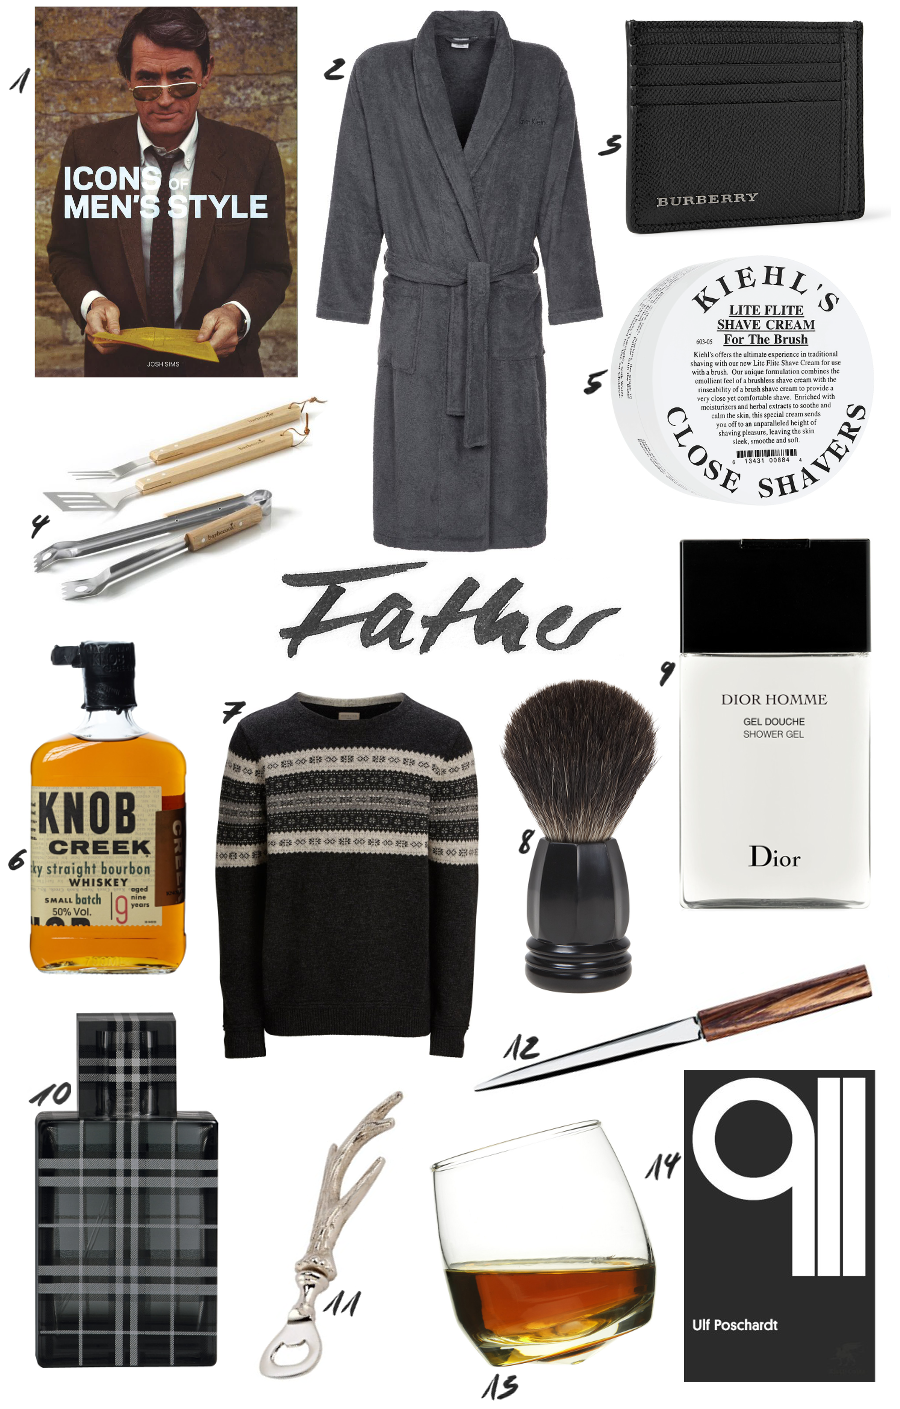 Xmas gift guide for dad